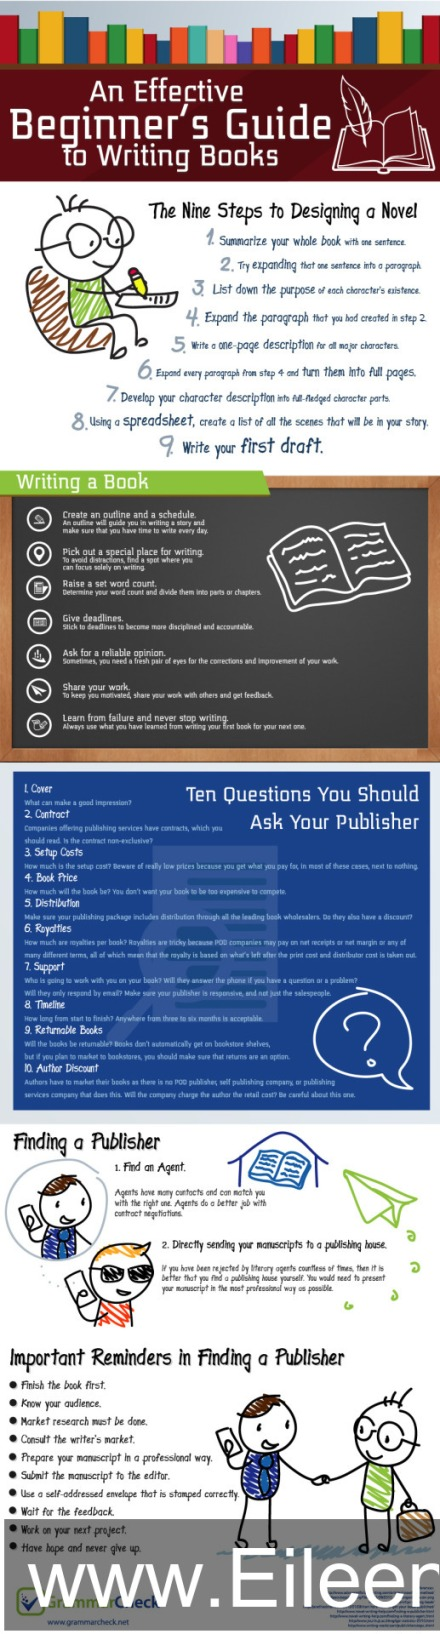 amwriting writing writingtips